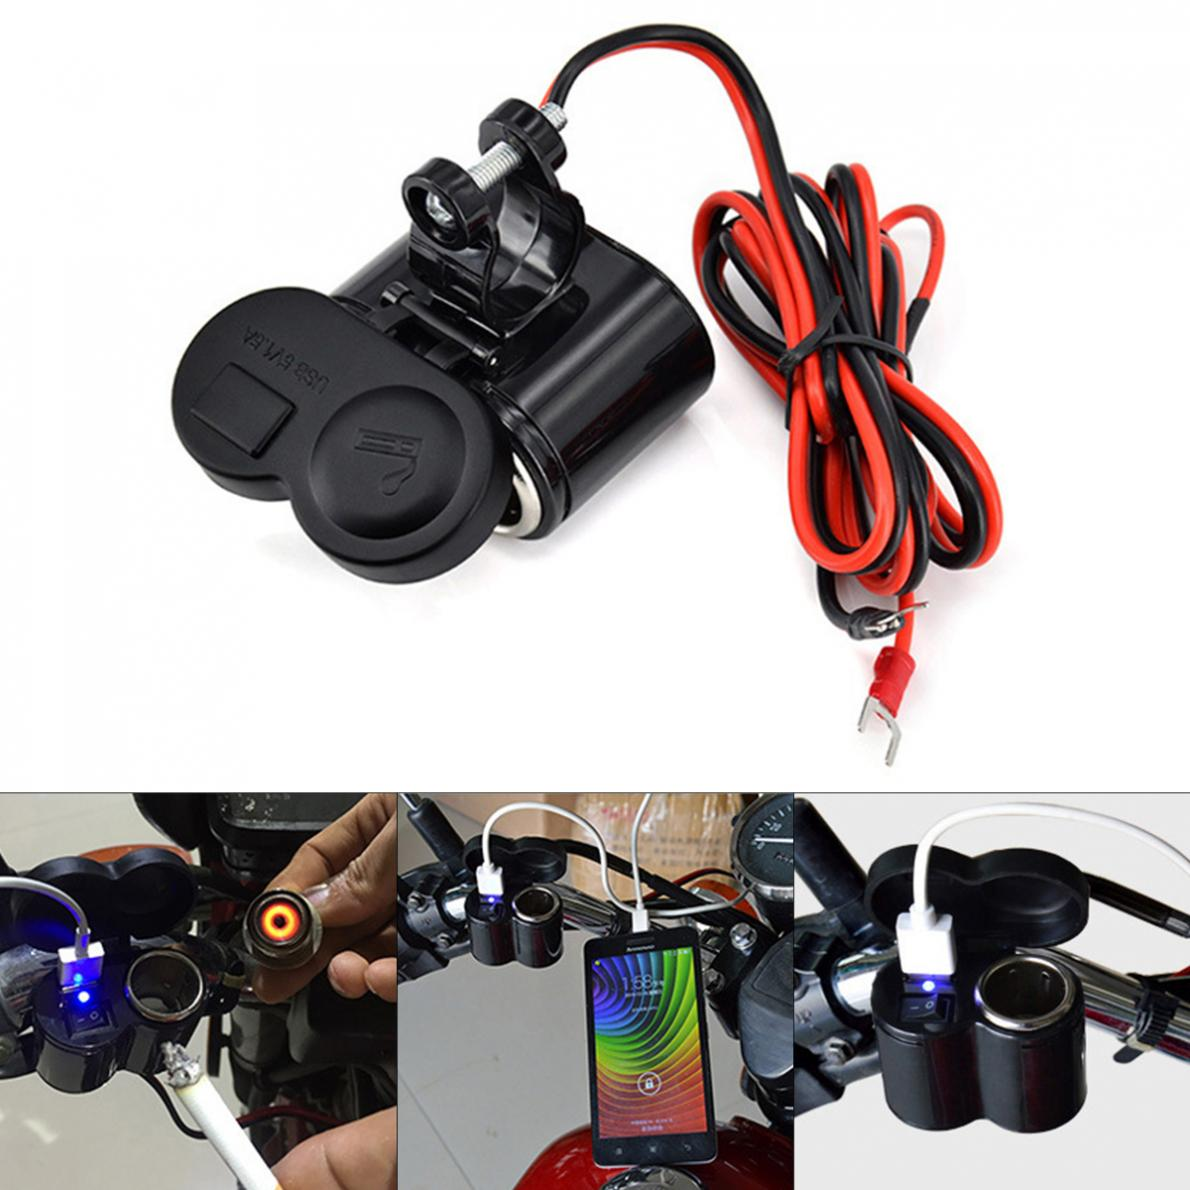 Motorcycle Charger Waterproof Multi-function Motorcycle Cigarette Lighter Socket USB Charger Speed Charge With Switch